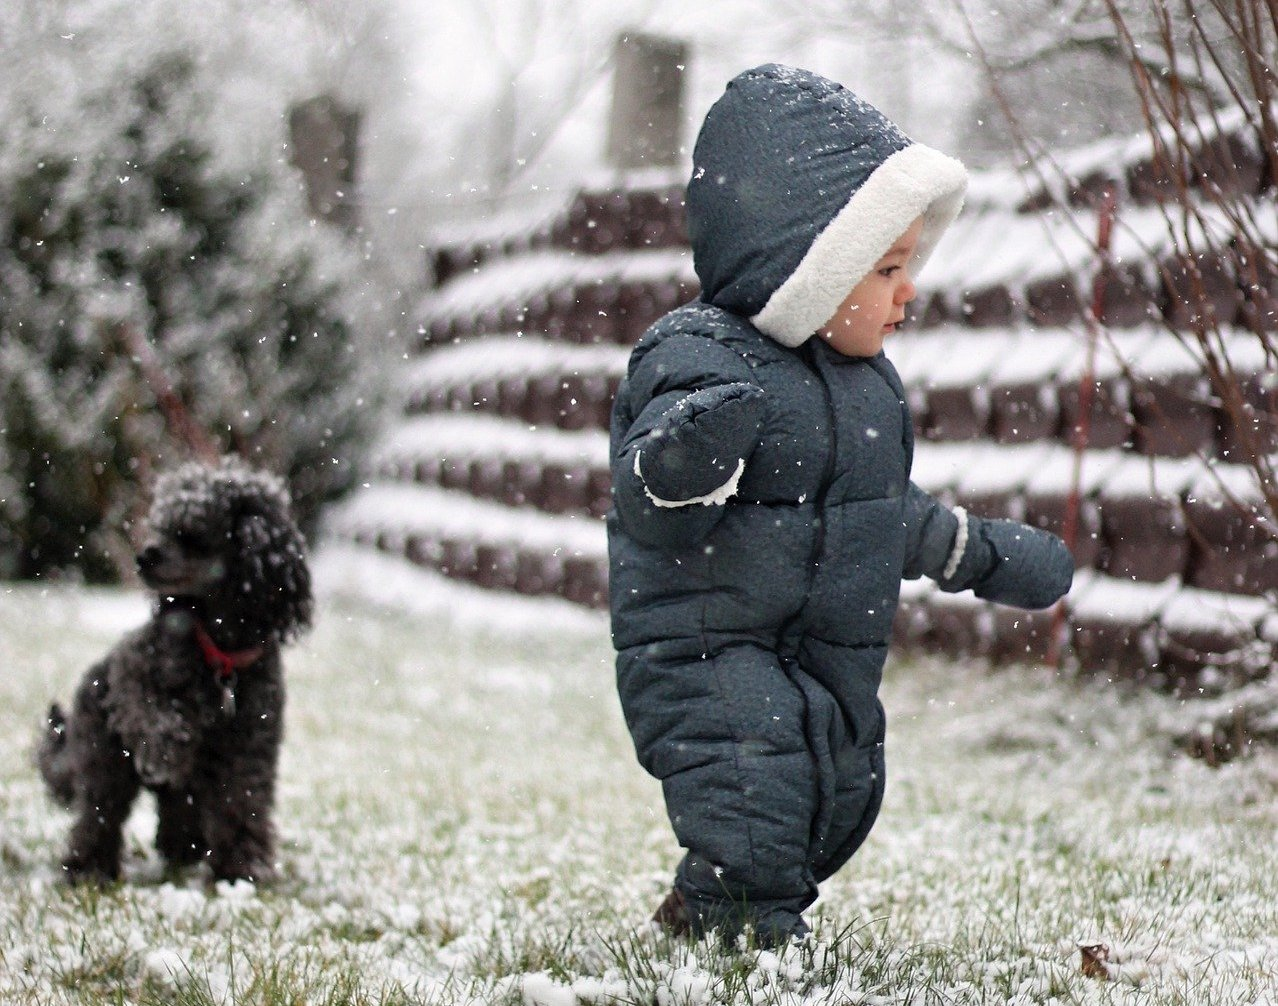 Baby and dog playing in snow